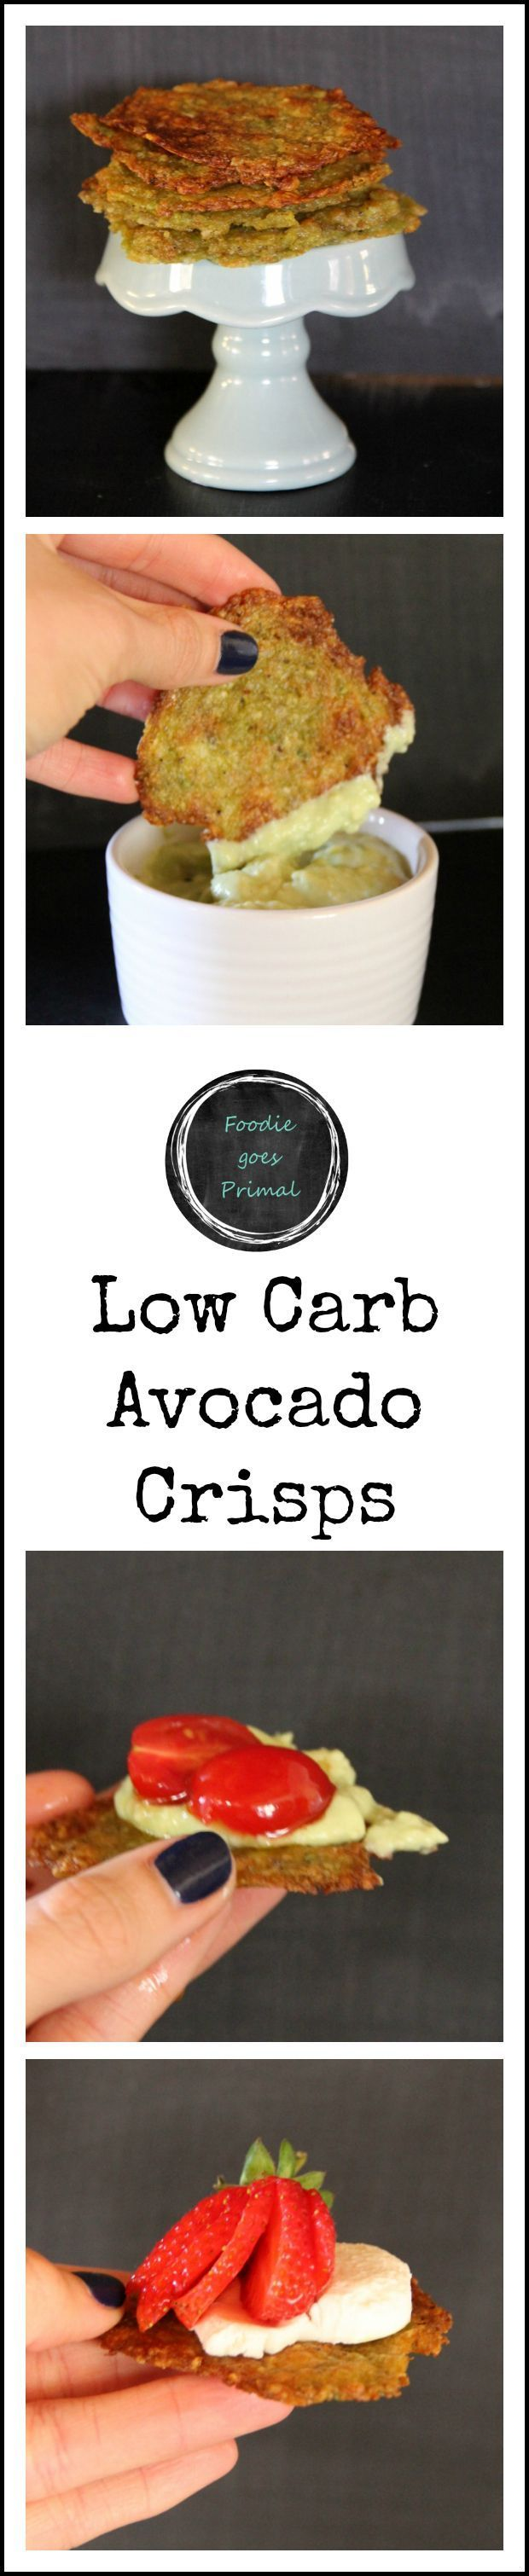 Low Carb Avocado Crisps – ripe Hass avocados, salt, finely grated hard cheese (e.g. Grana Pedana/Parmesan)